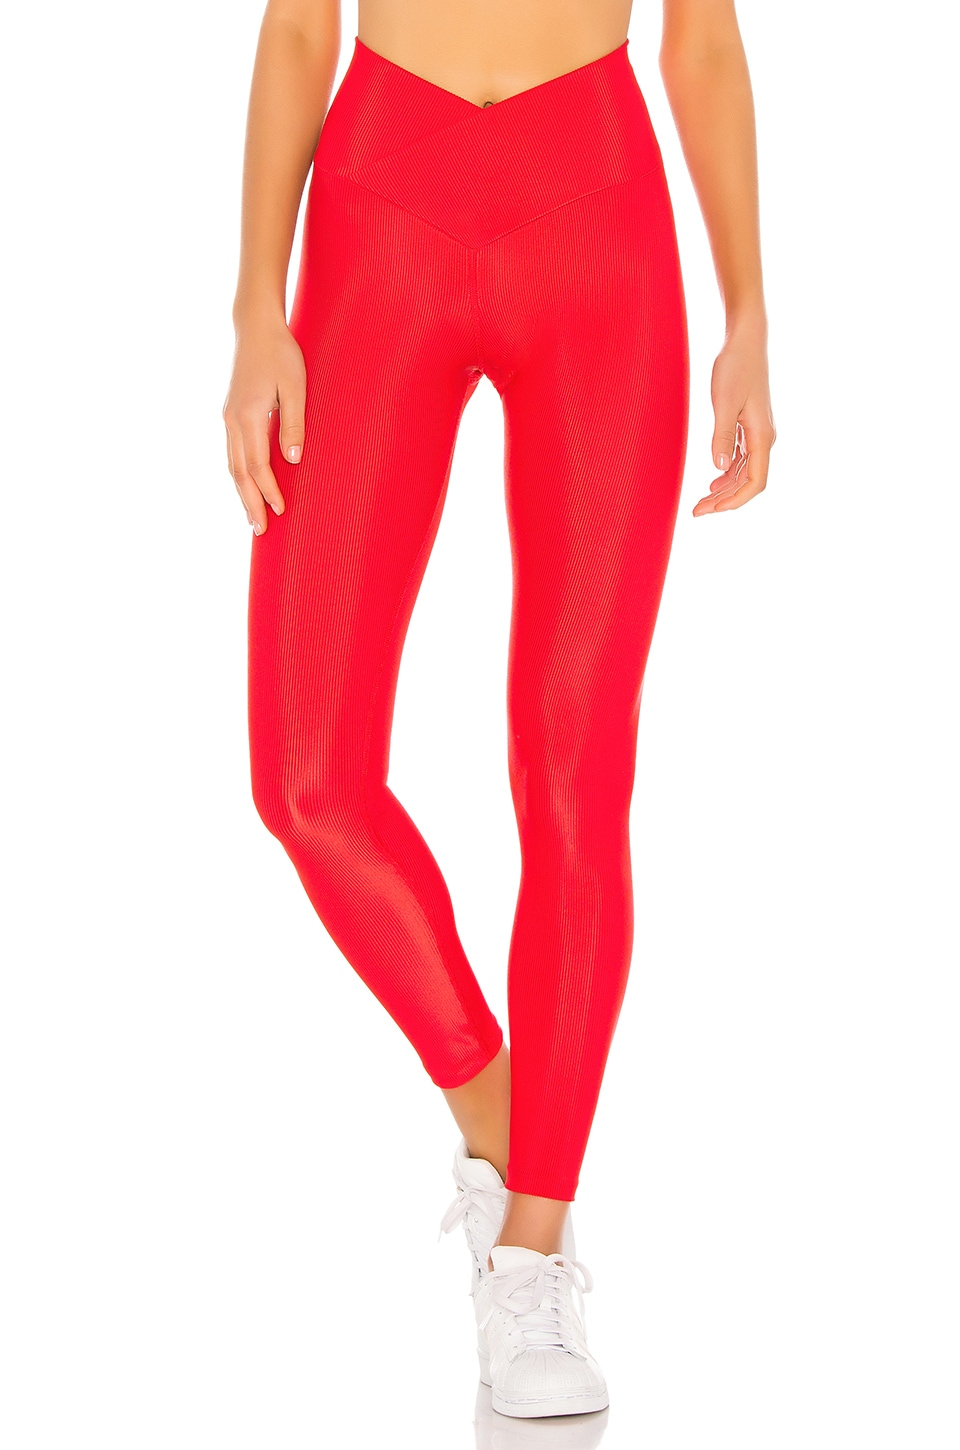 BEACH RIOT LEGGINGS CARA